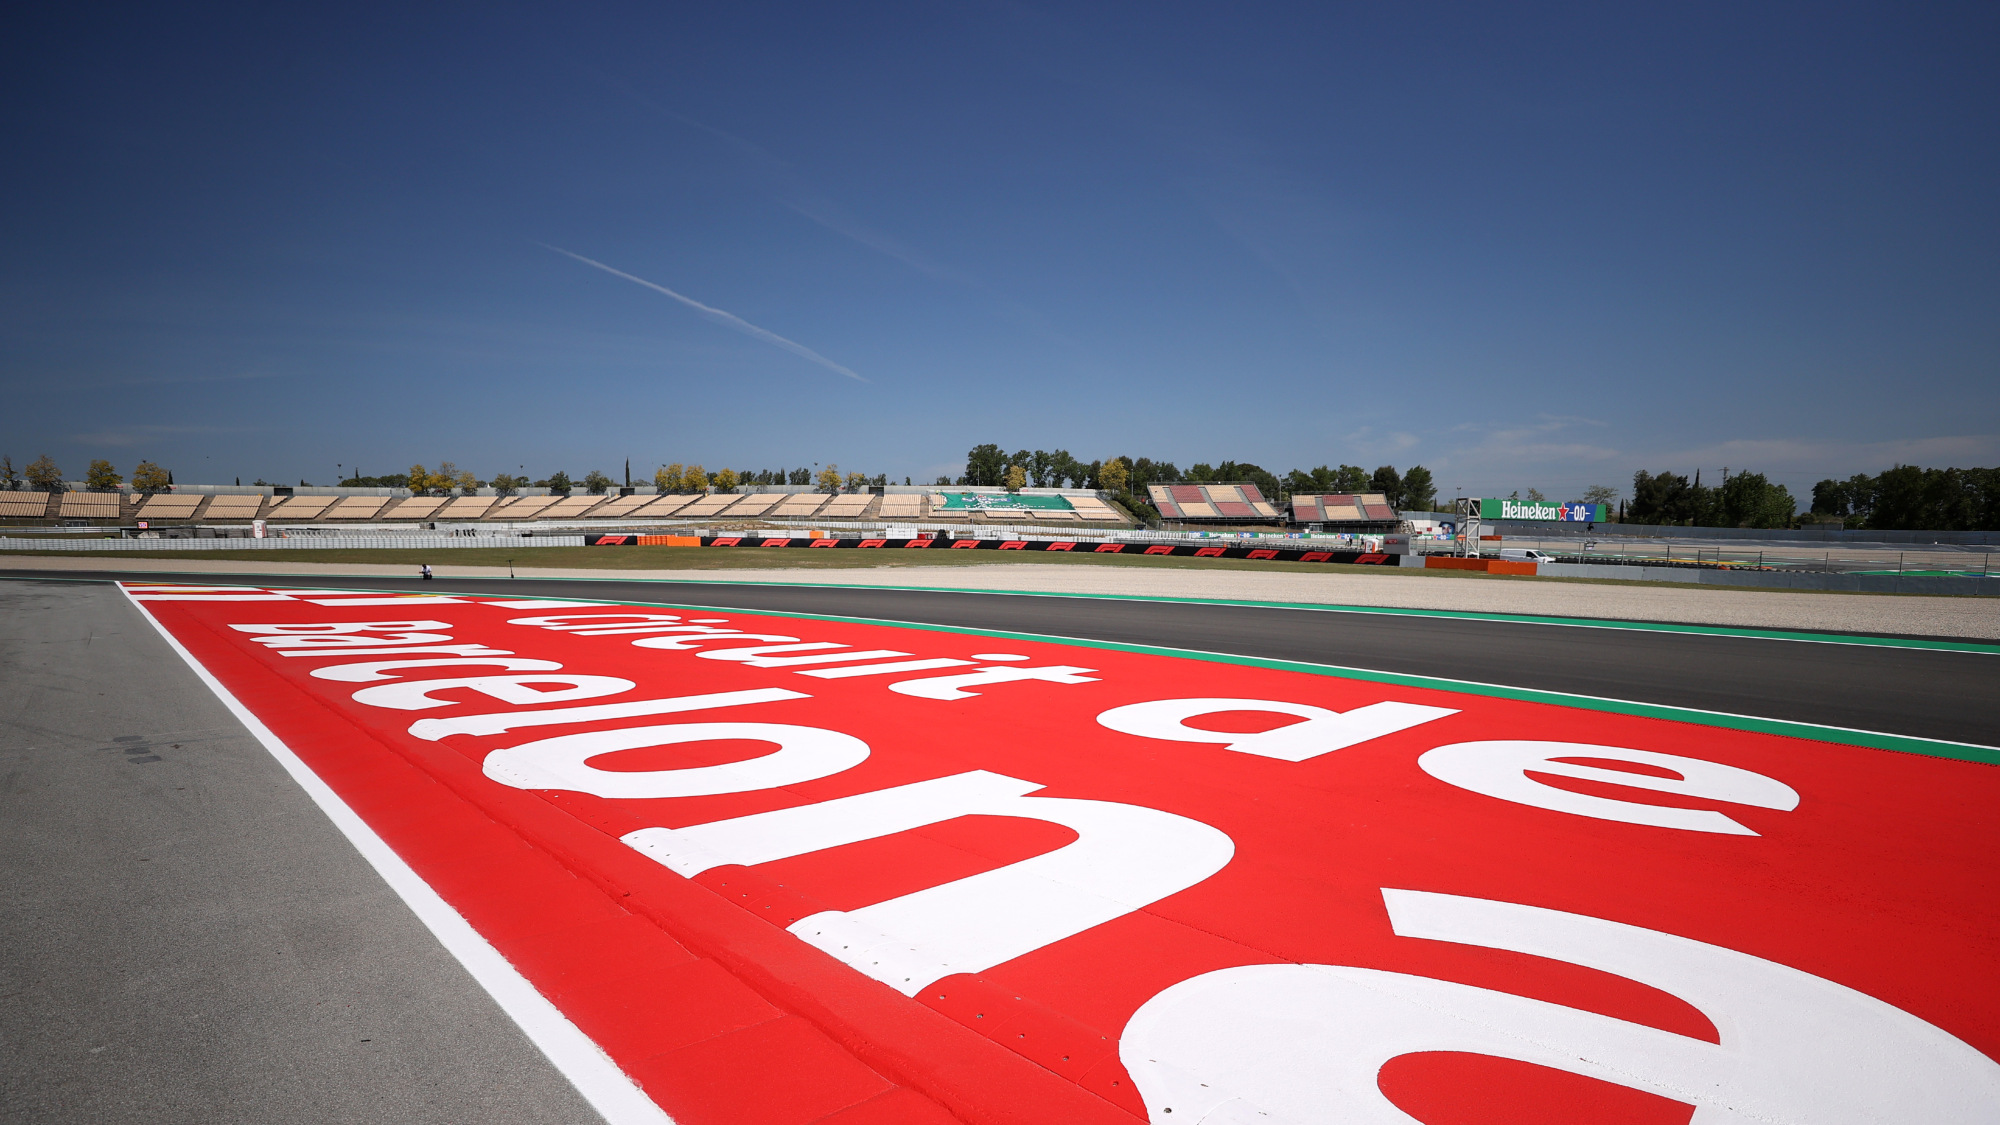 How to watch the 2021 Spanish Grand Prix – start time and TV channels